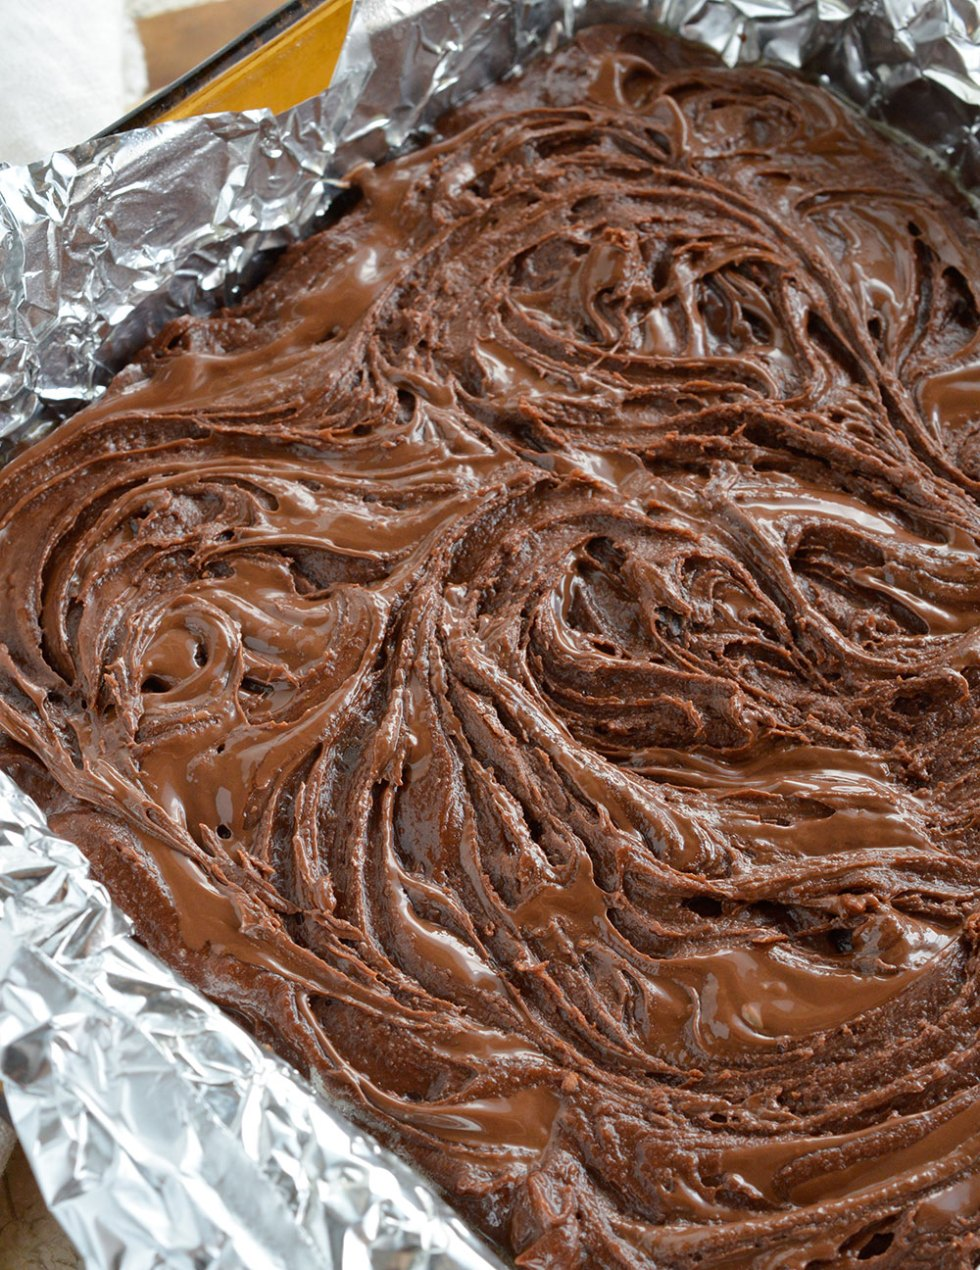 This Chocolate Chunk Nutella Brownies Recipe is an easy and delicious chocolate dessert! Fudgy brownies packed full of chocolate chunks then topped with a Nutella swirl. Perfect for potlucks, picnics or just because!